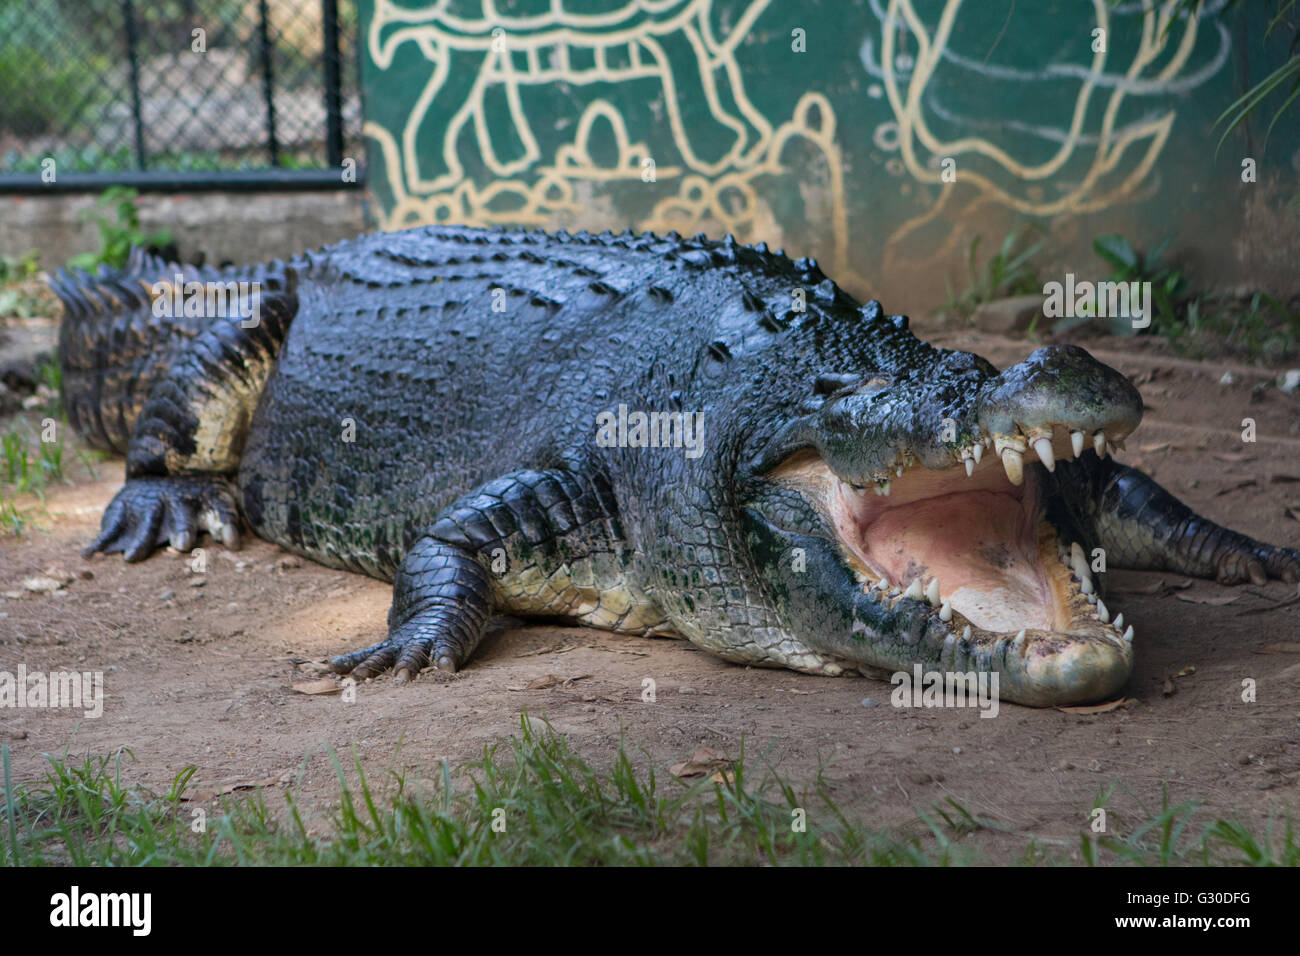 3rd largest saltwater crocodile in the Philippines named Lapu-Lapu, taking a rest after feeding time. - Stock Image